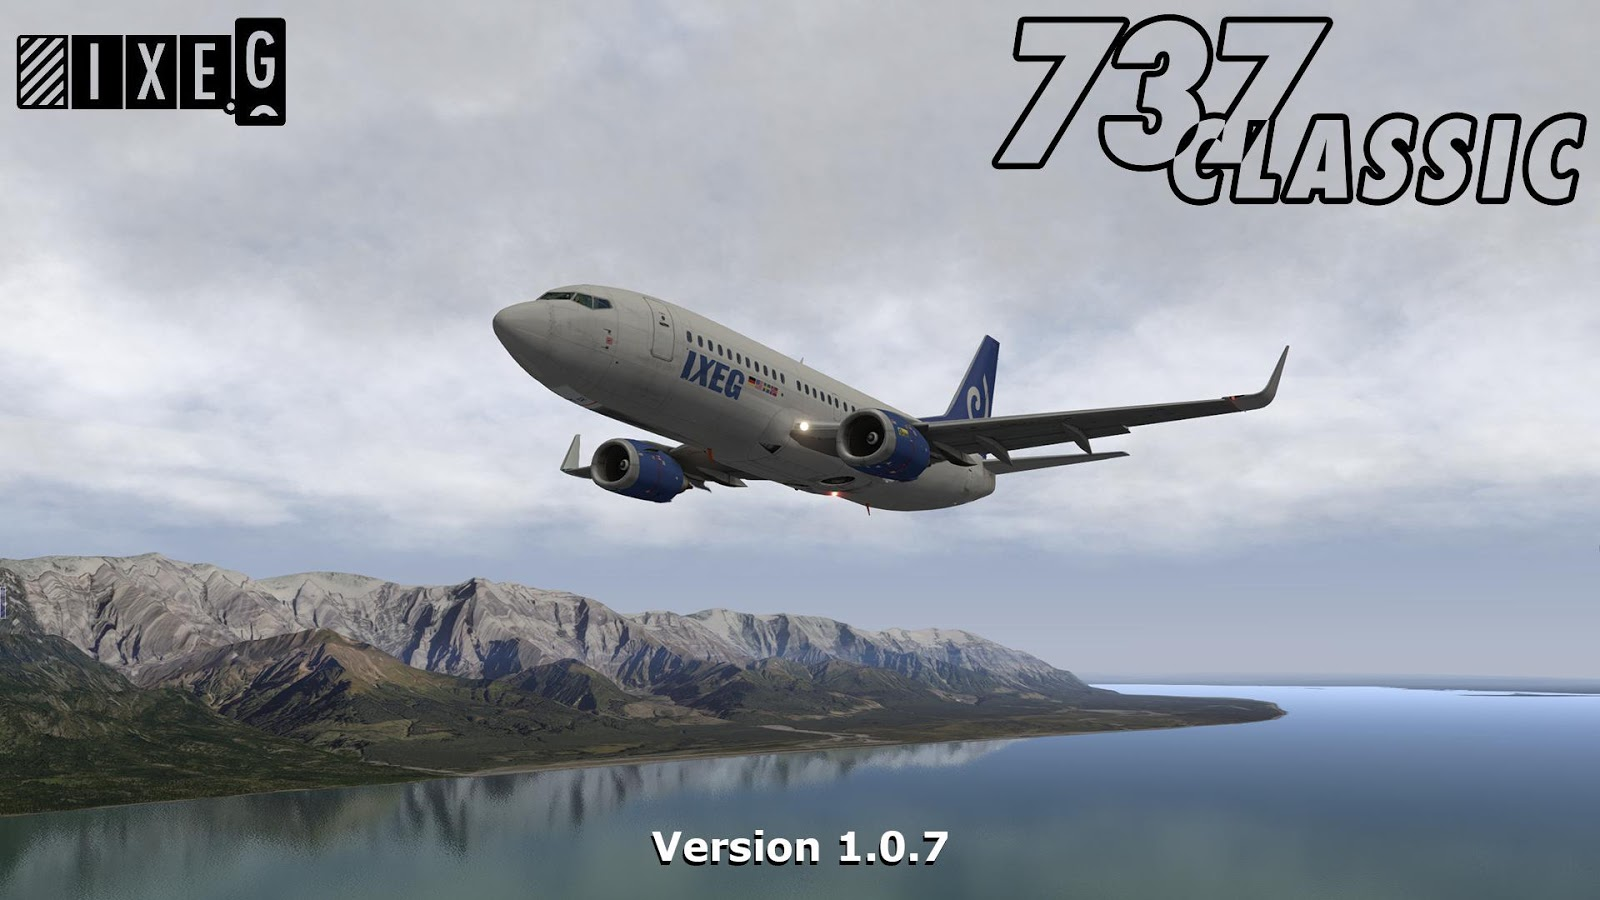 IXEG 733 Classic 1 0 7 Update - FLIGHT  XTREME  AVIATION